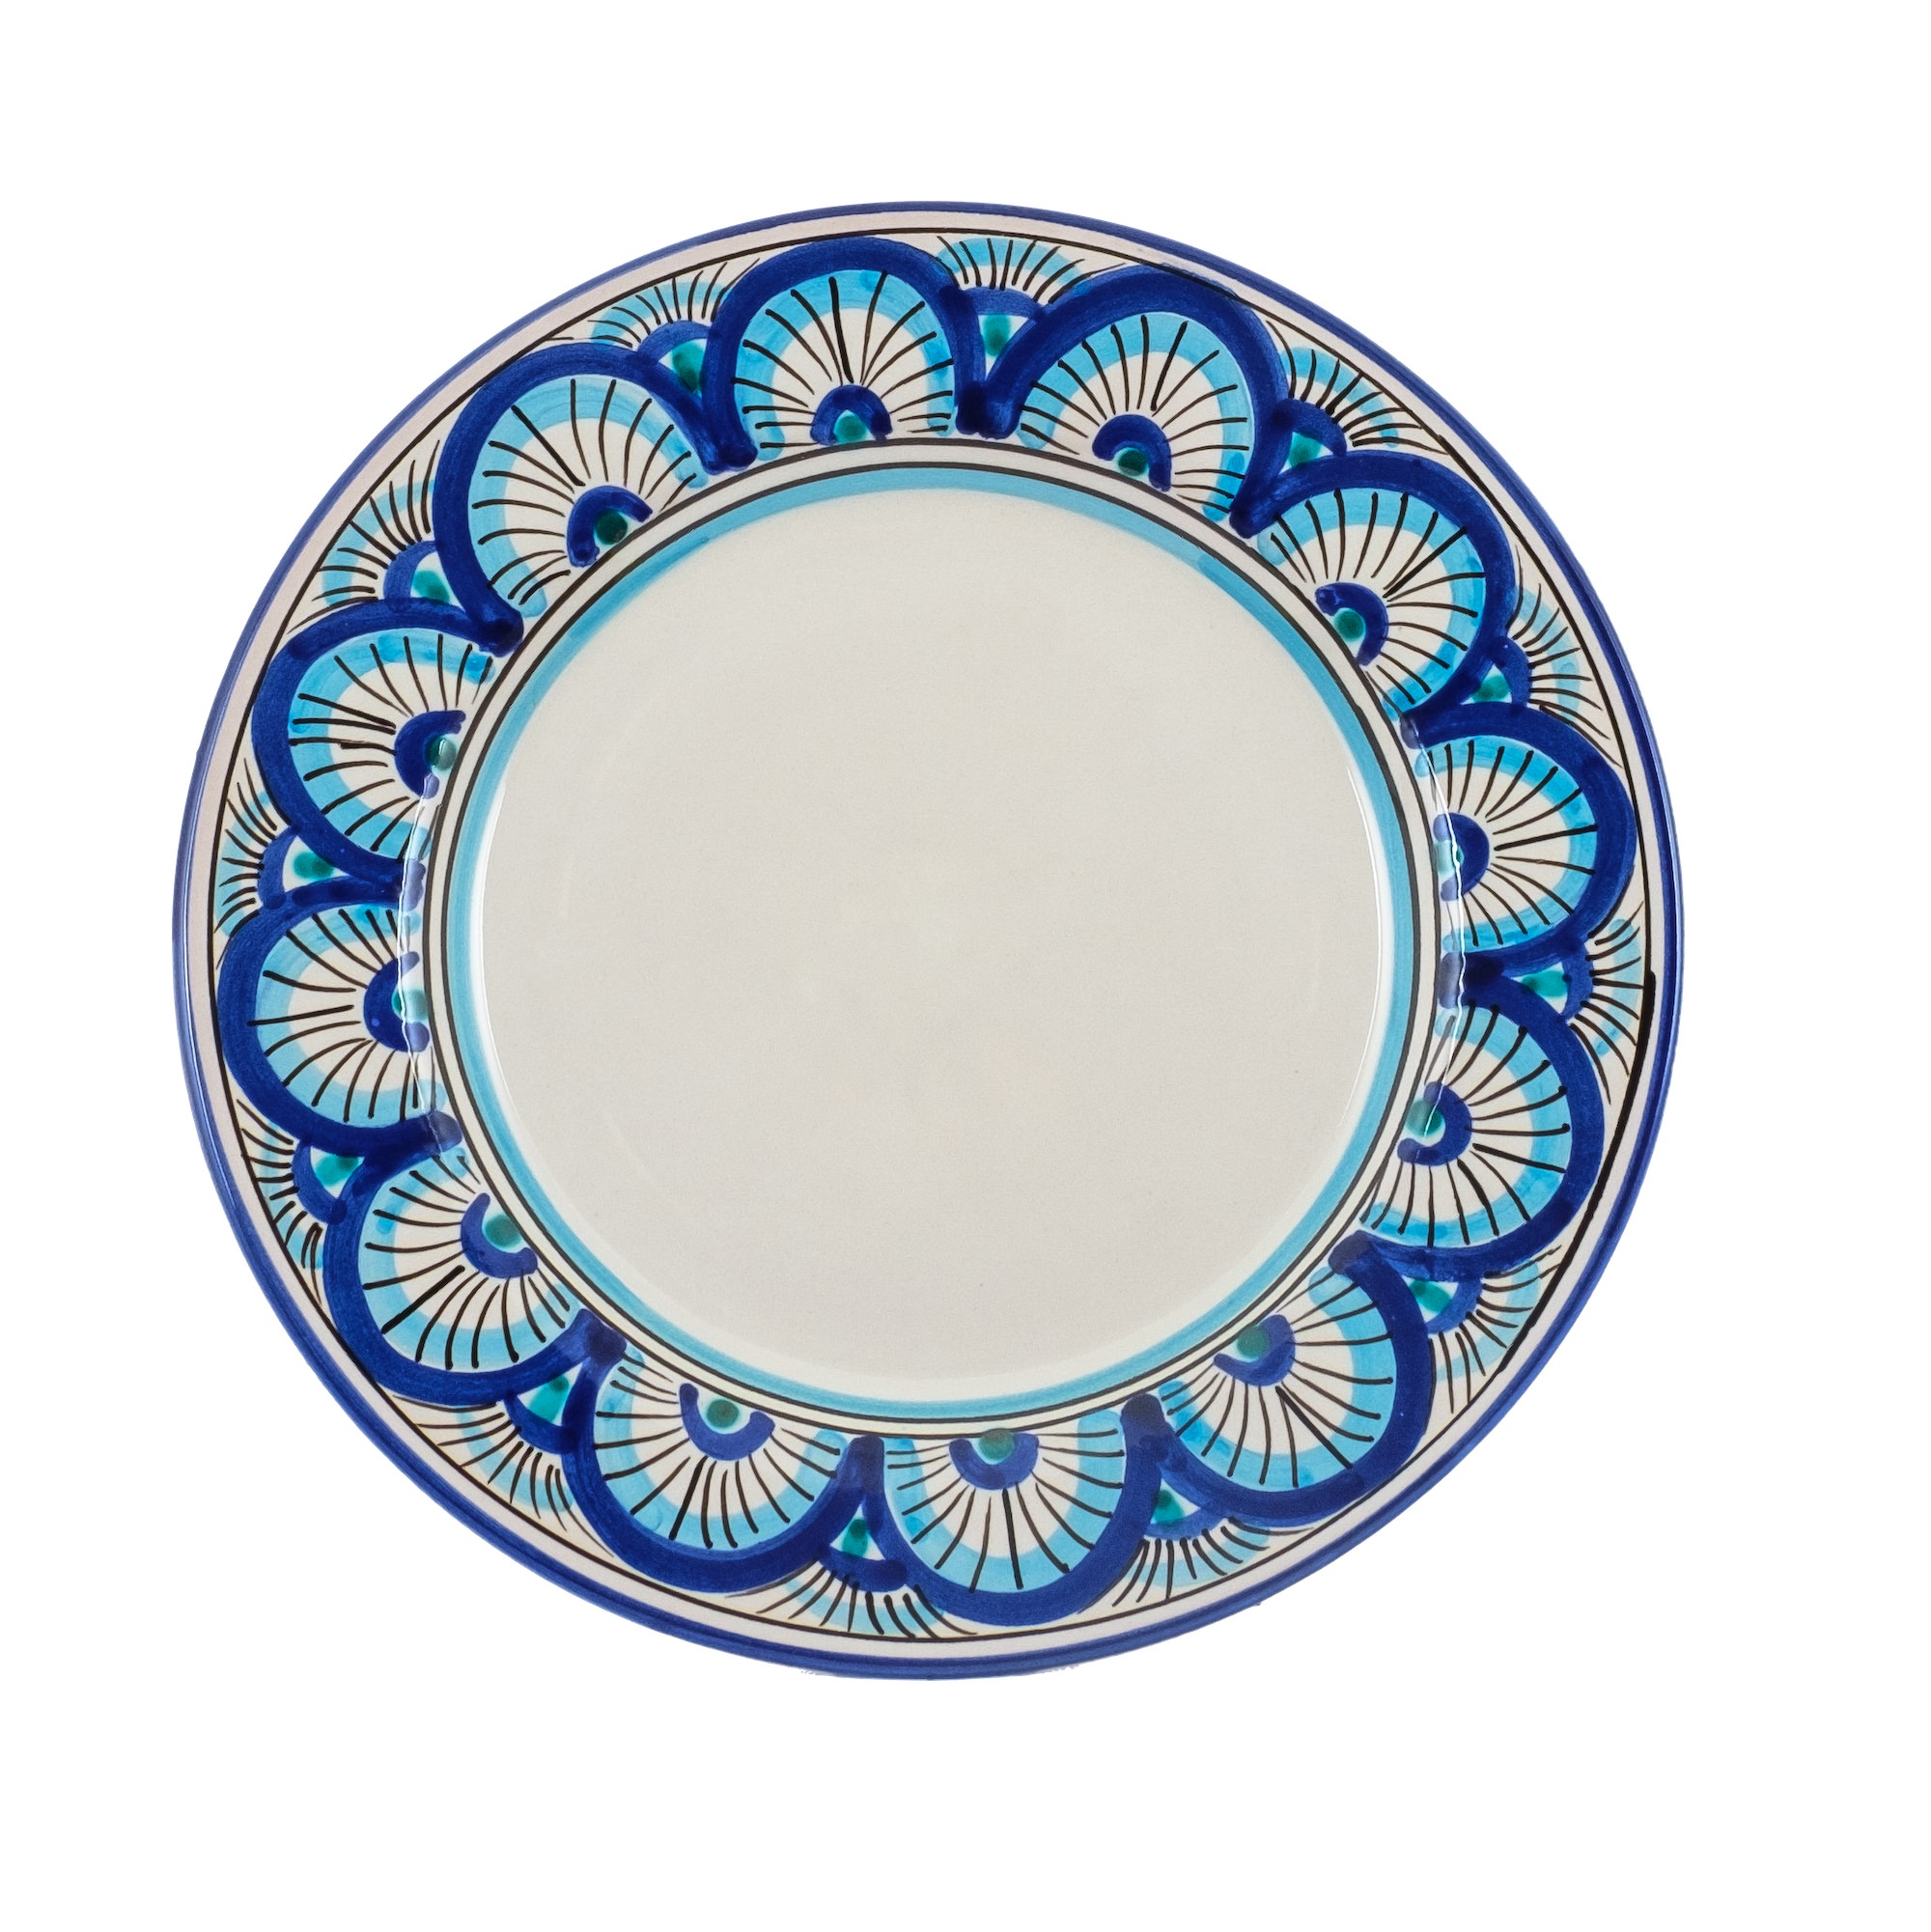 Collection dishes Ego The blue San Leone Caltagirone - Sicilia